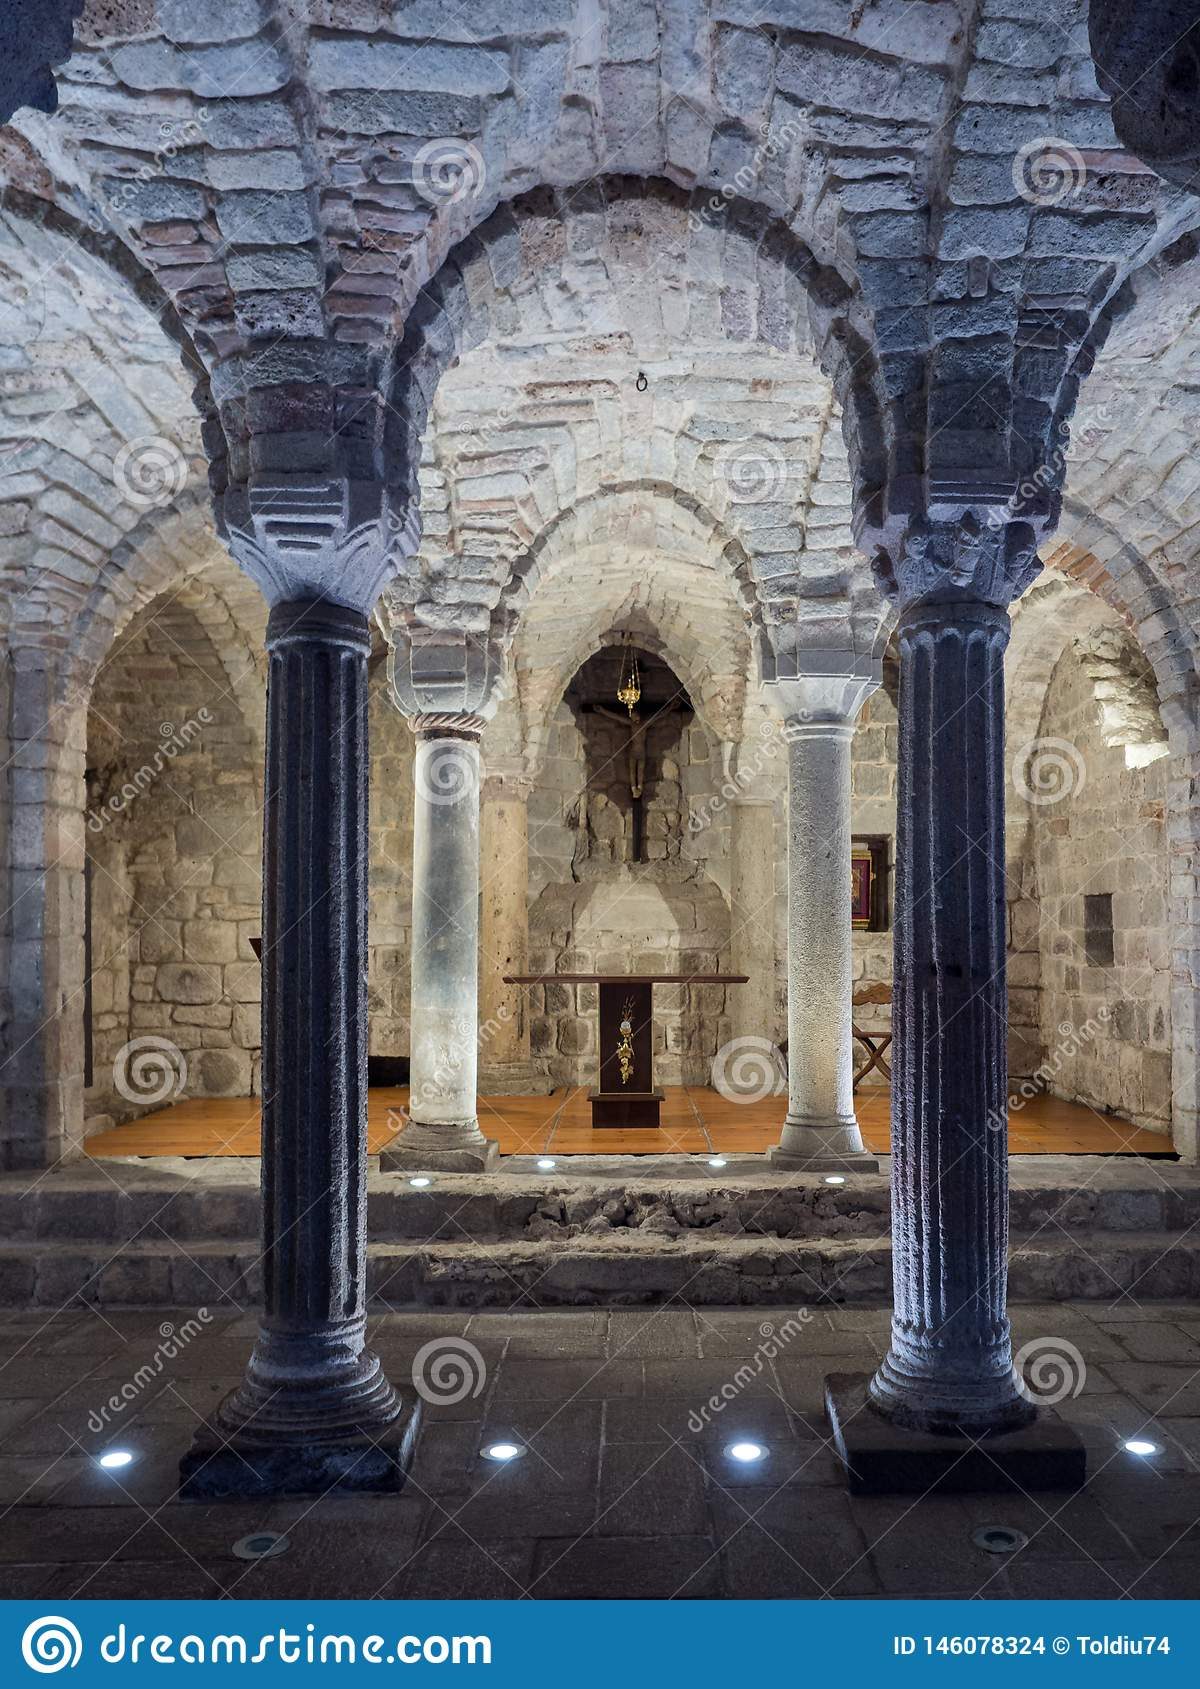 Crypt of a medieval abbey with carved stone columns